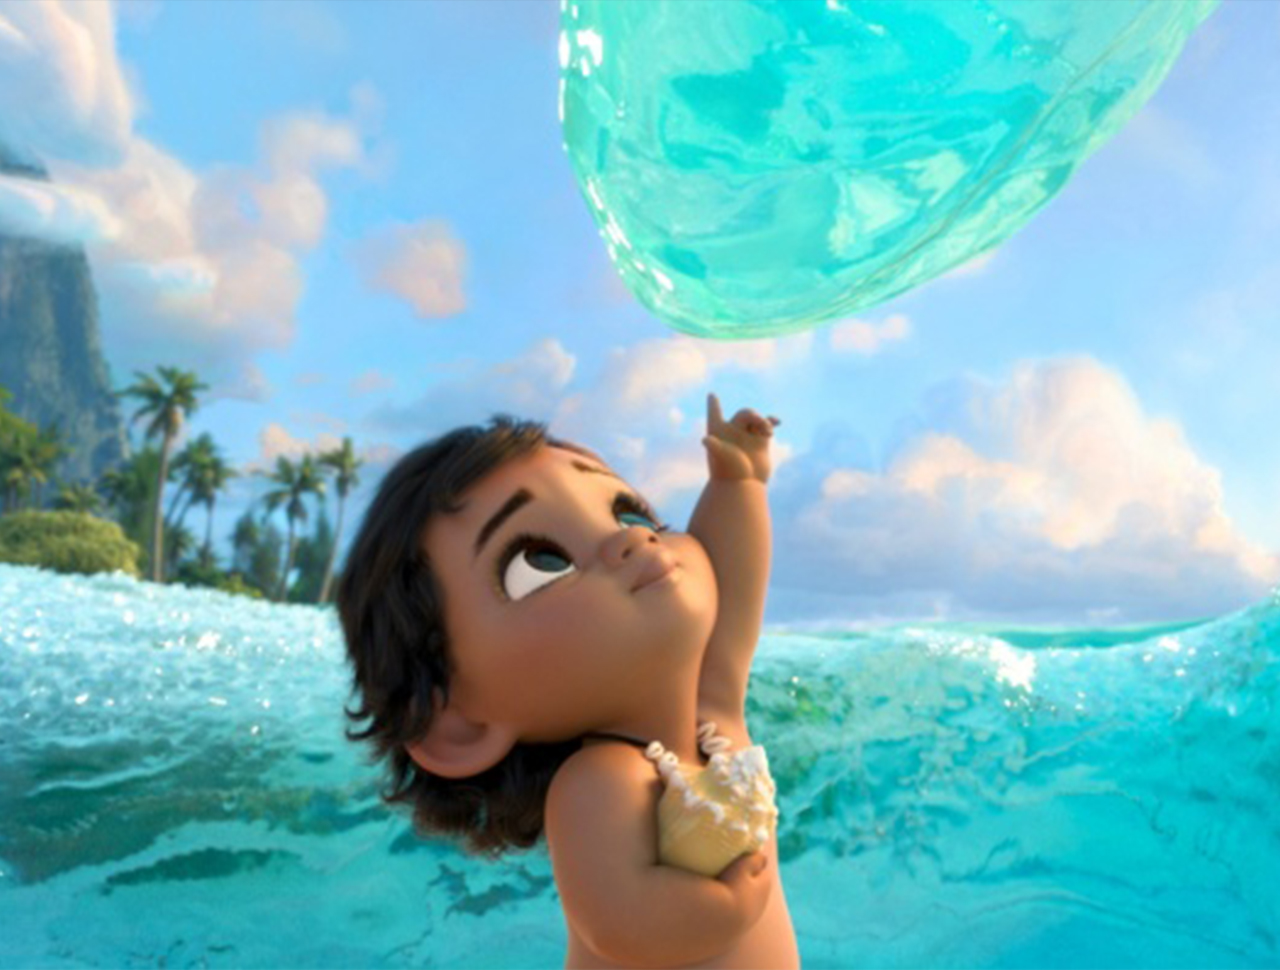 cute moana hd wallpapers download | baby moana images